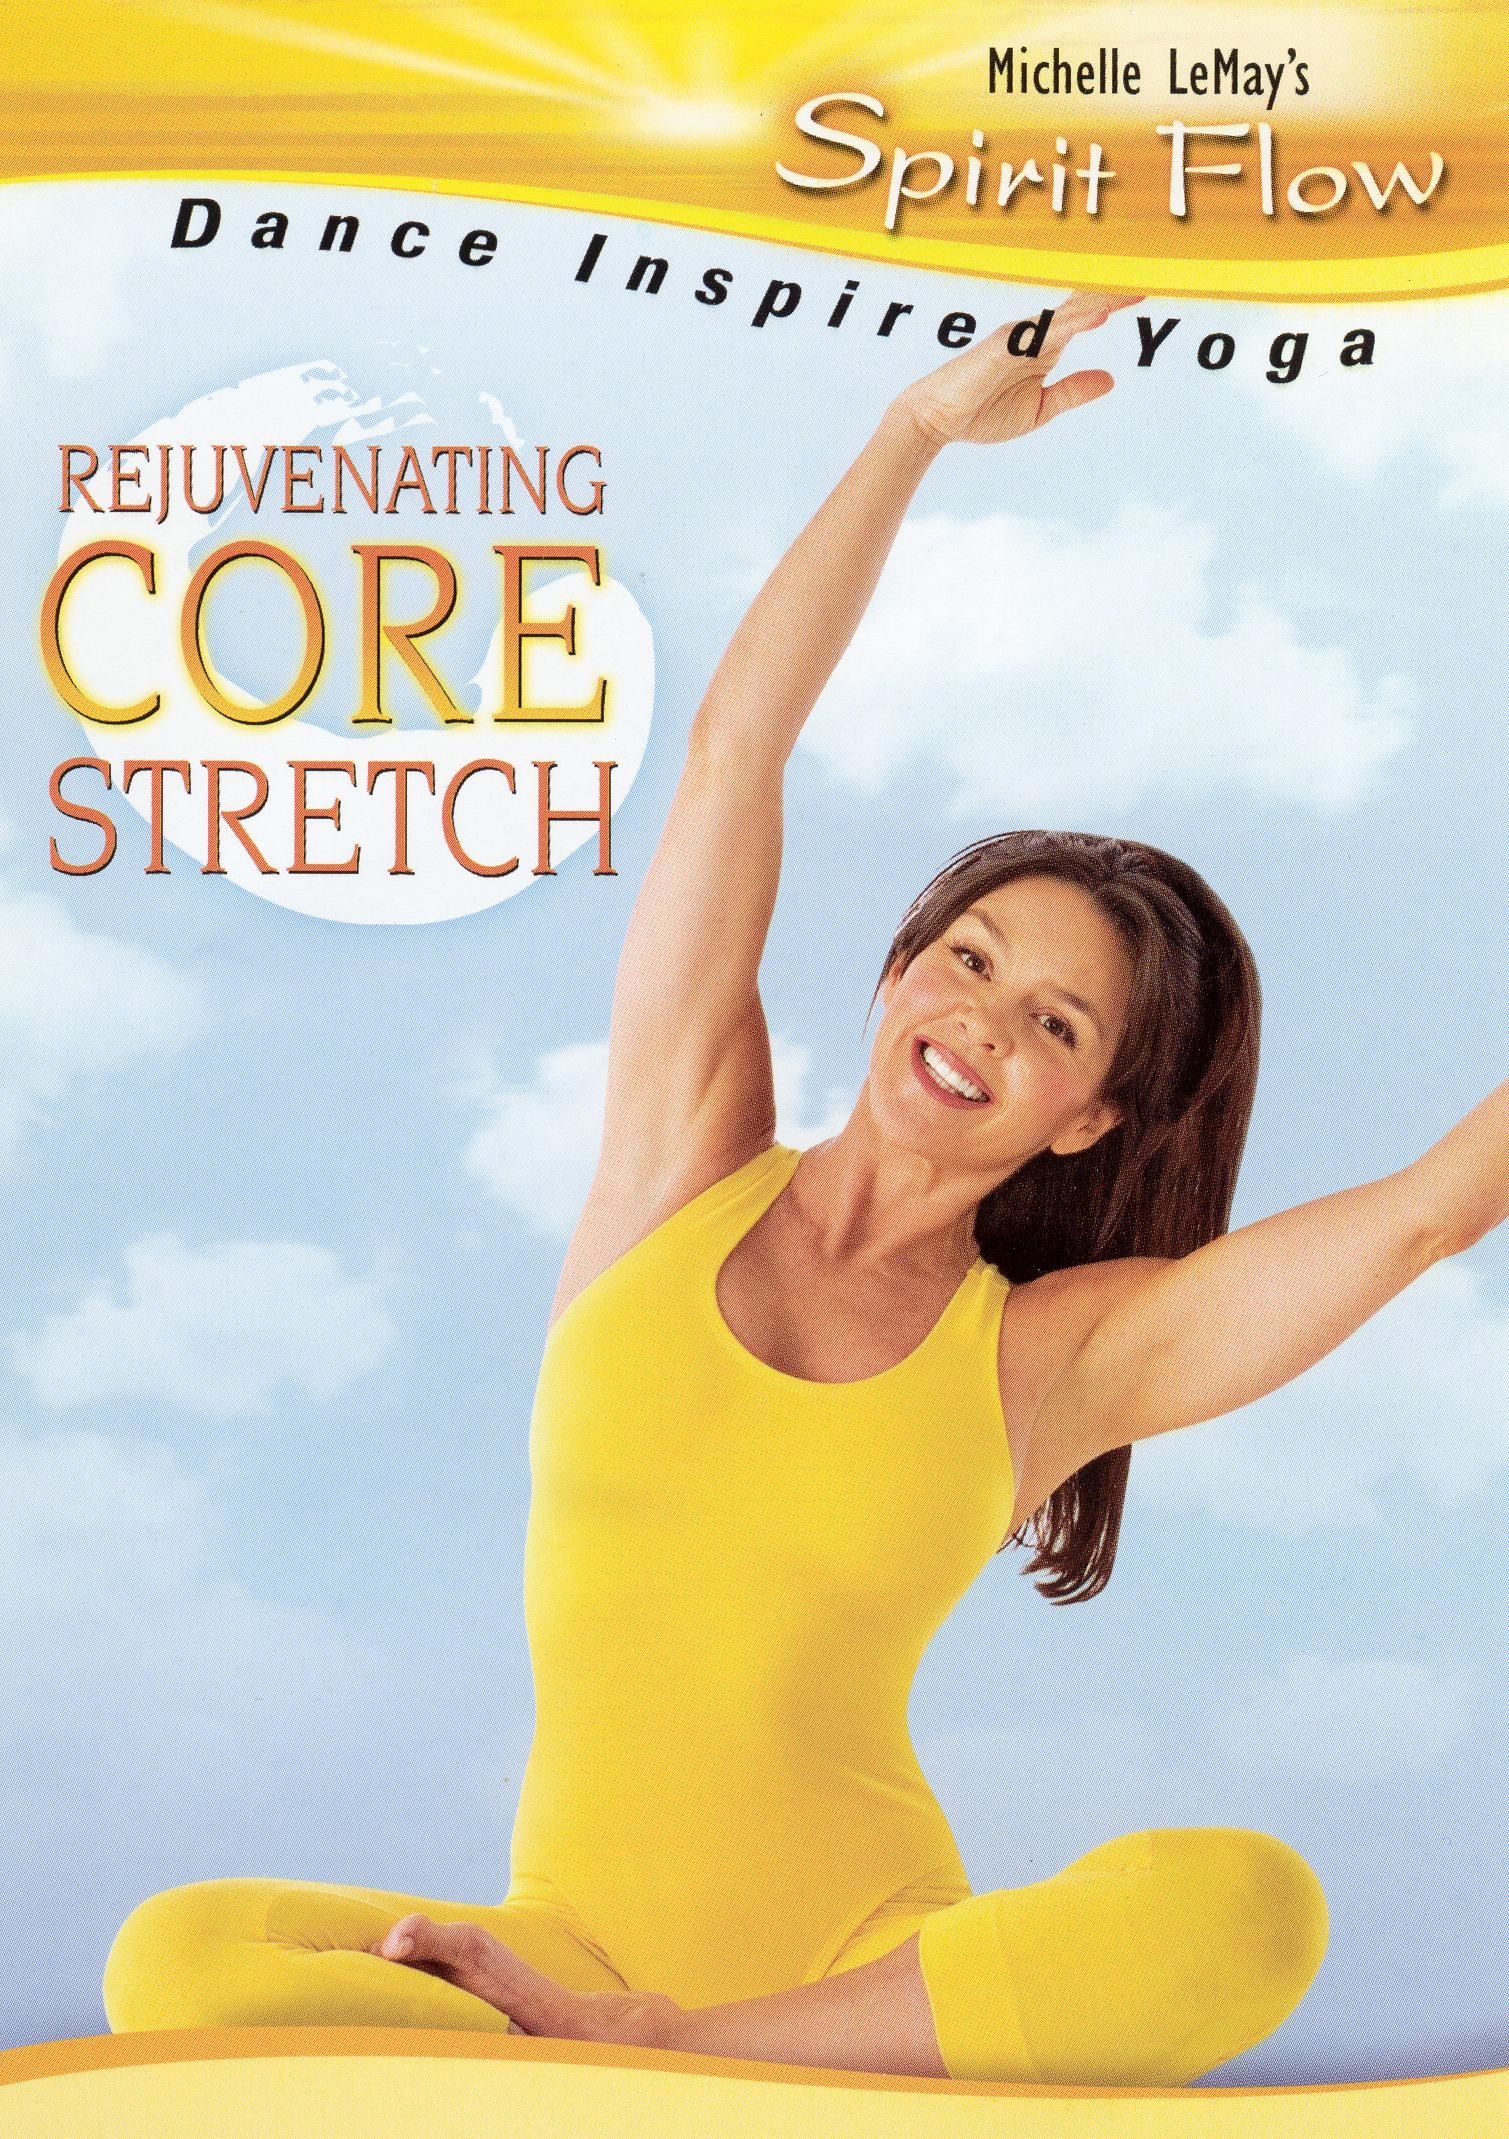 Michelle LeMay's Spirit Flow: Rejuvenating Core Stretch